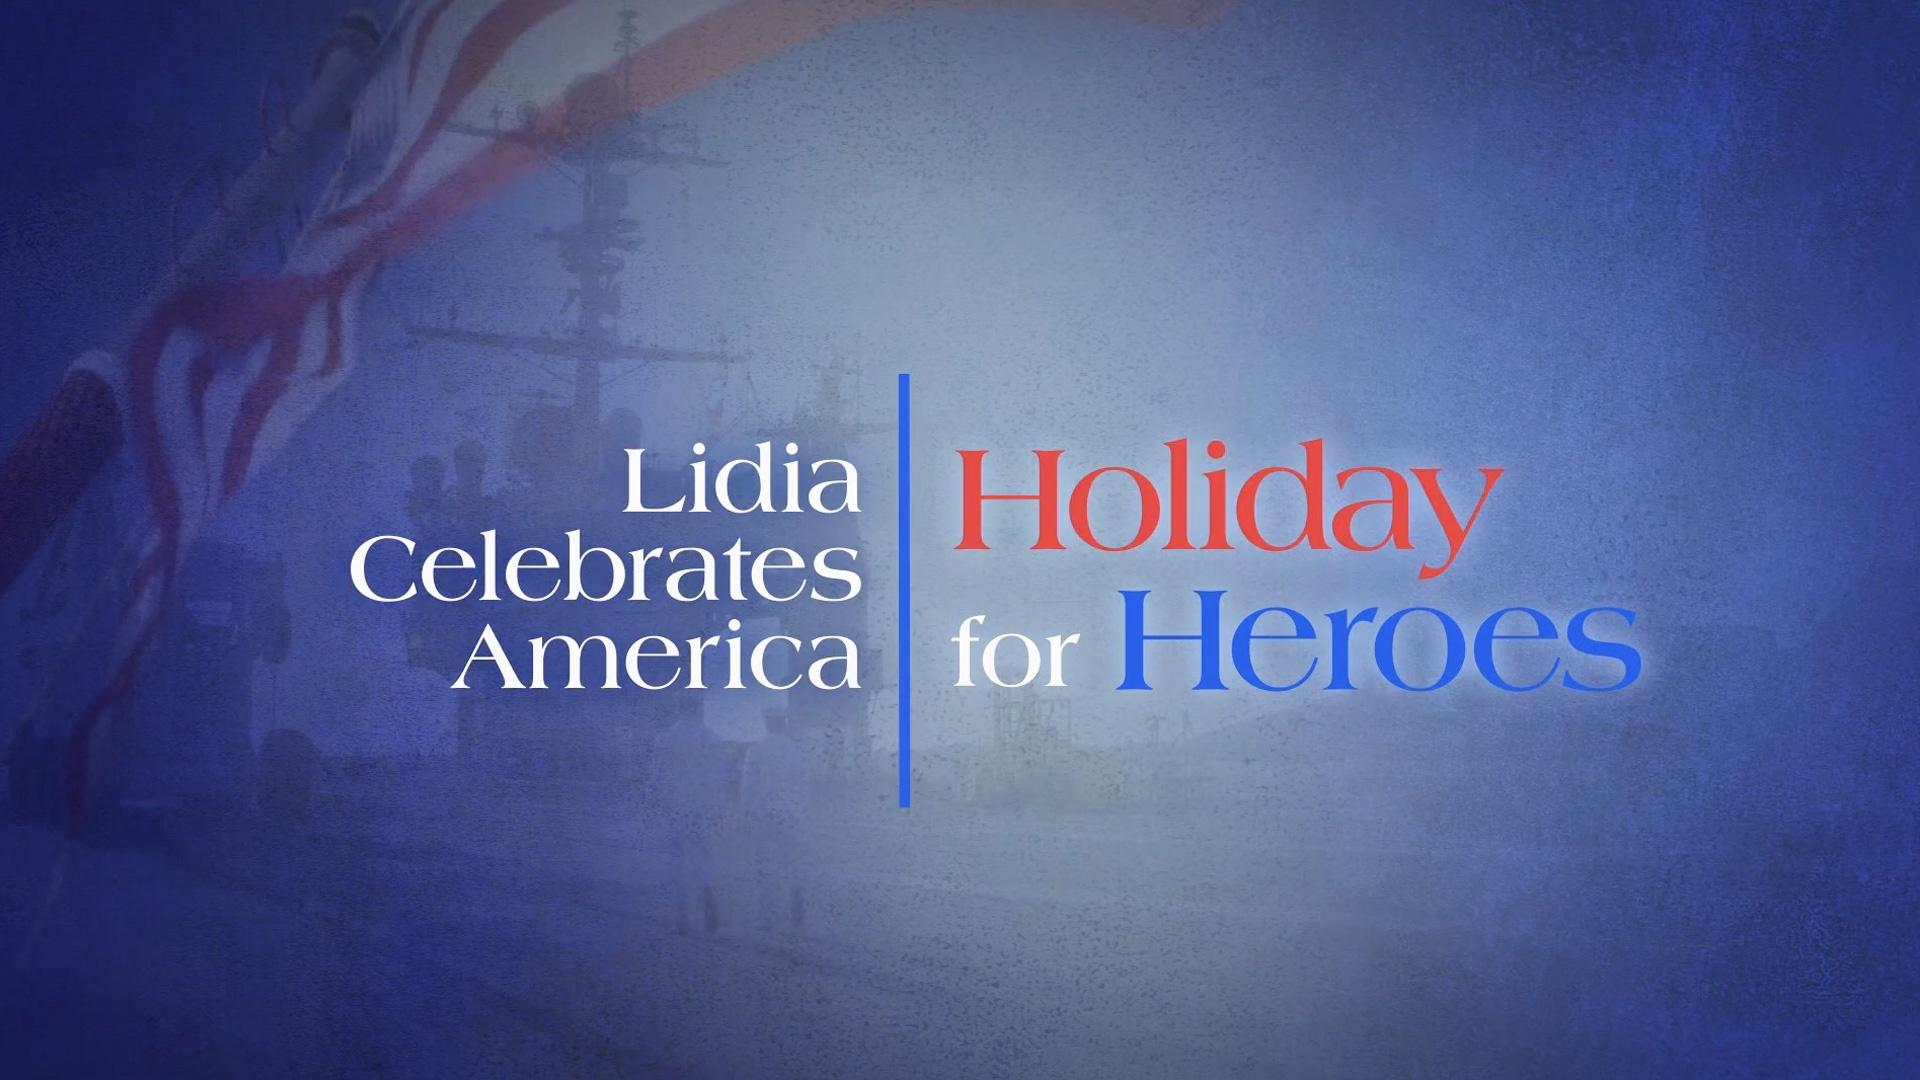 Lidia Celebrates America: Holiday for Heroes